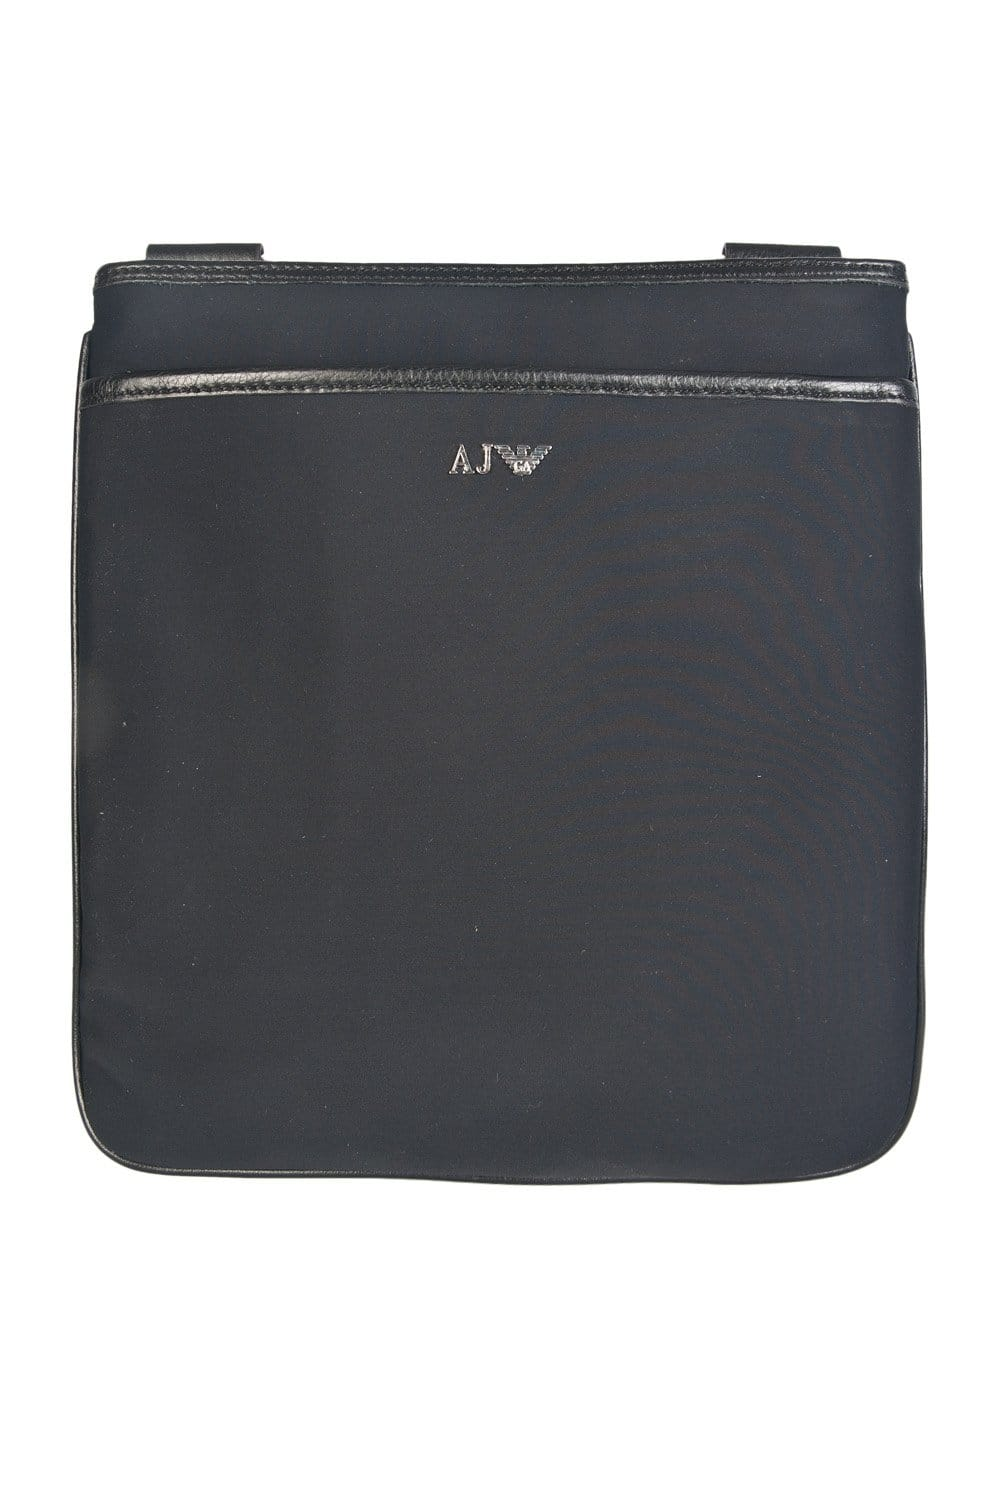 8f70795cd830 Armani Jeans Canvas Tablet Bag in Black 062962R7 - Accessories from Sage  Clothing UK